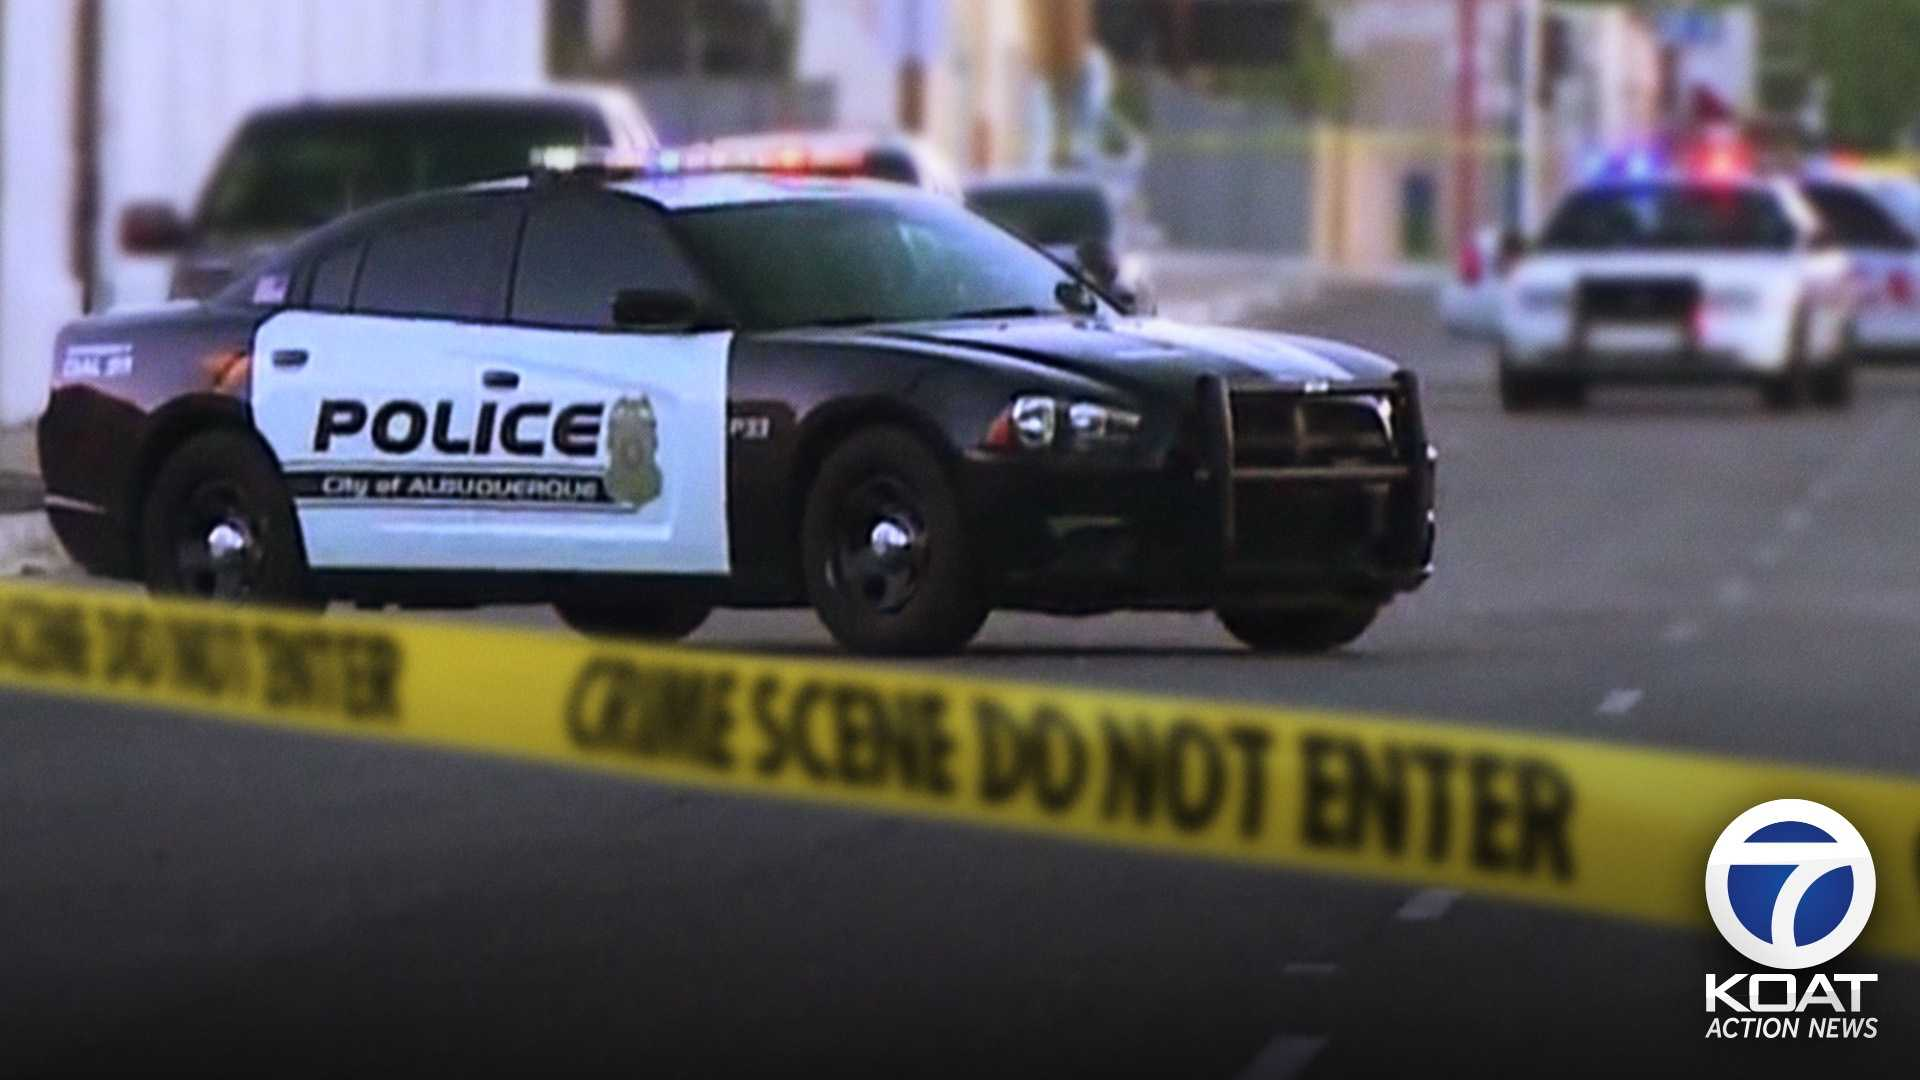 There have been 42 Albuquerque police officer-involved shootings since January 2010. Click through to read about each shooting in chronological order. A January 2015 blue-on-blue shooting and incident in which Officer Lou Golson was shot during a traffic stop are not included on this list.